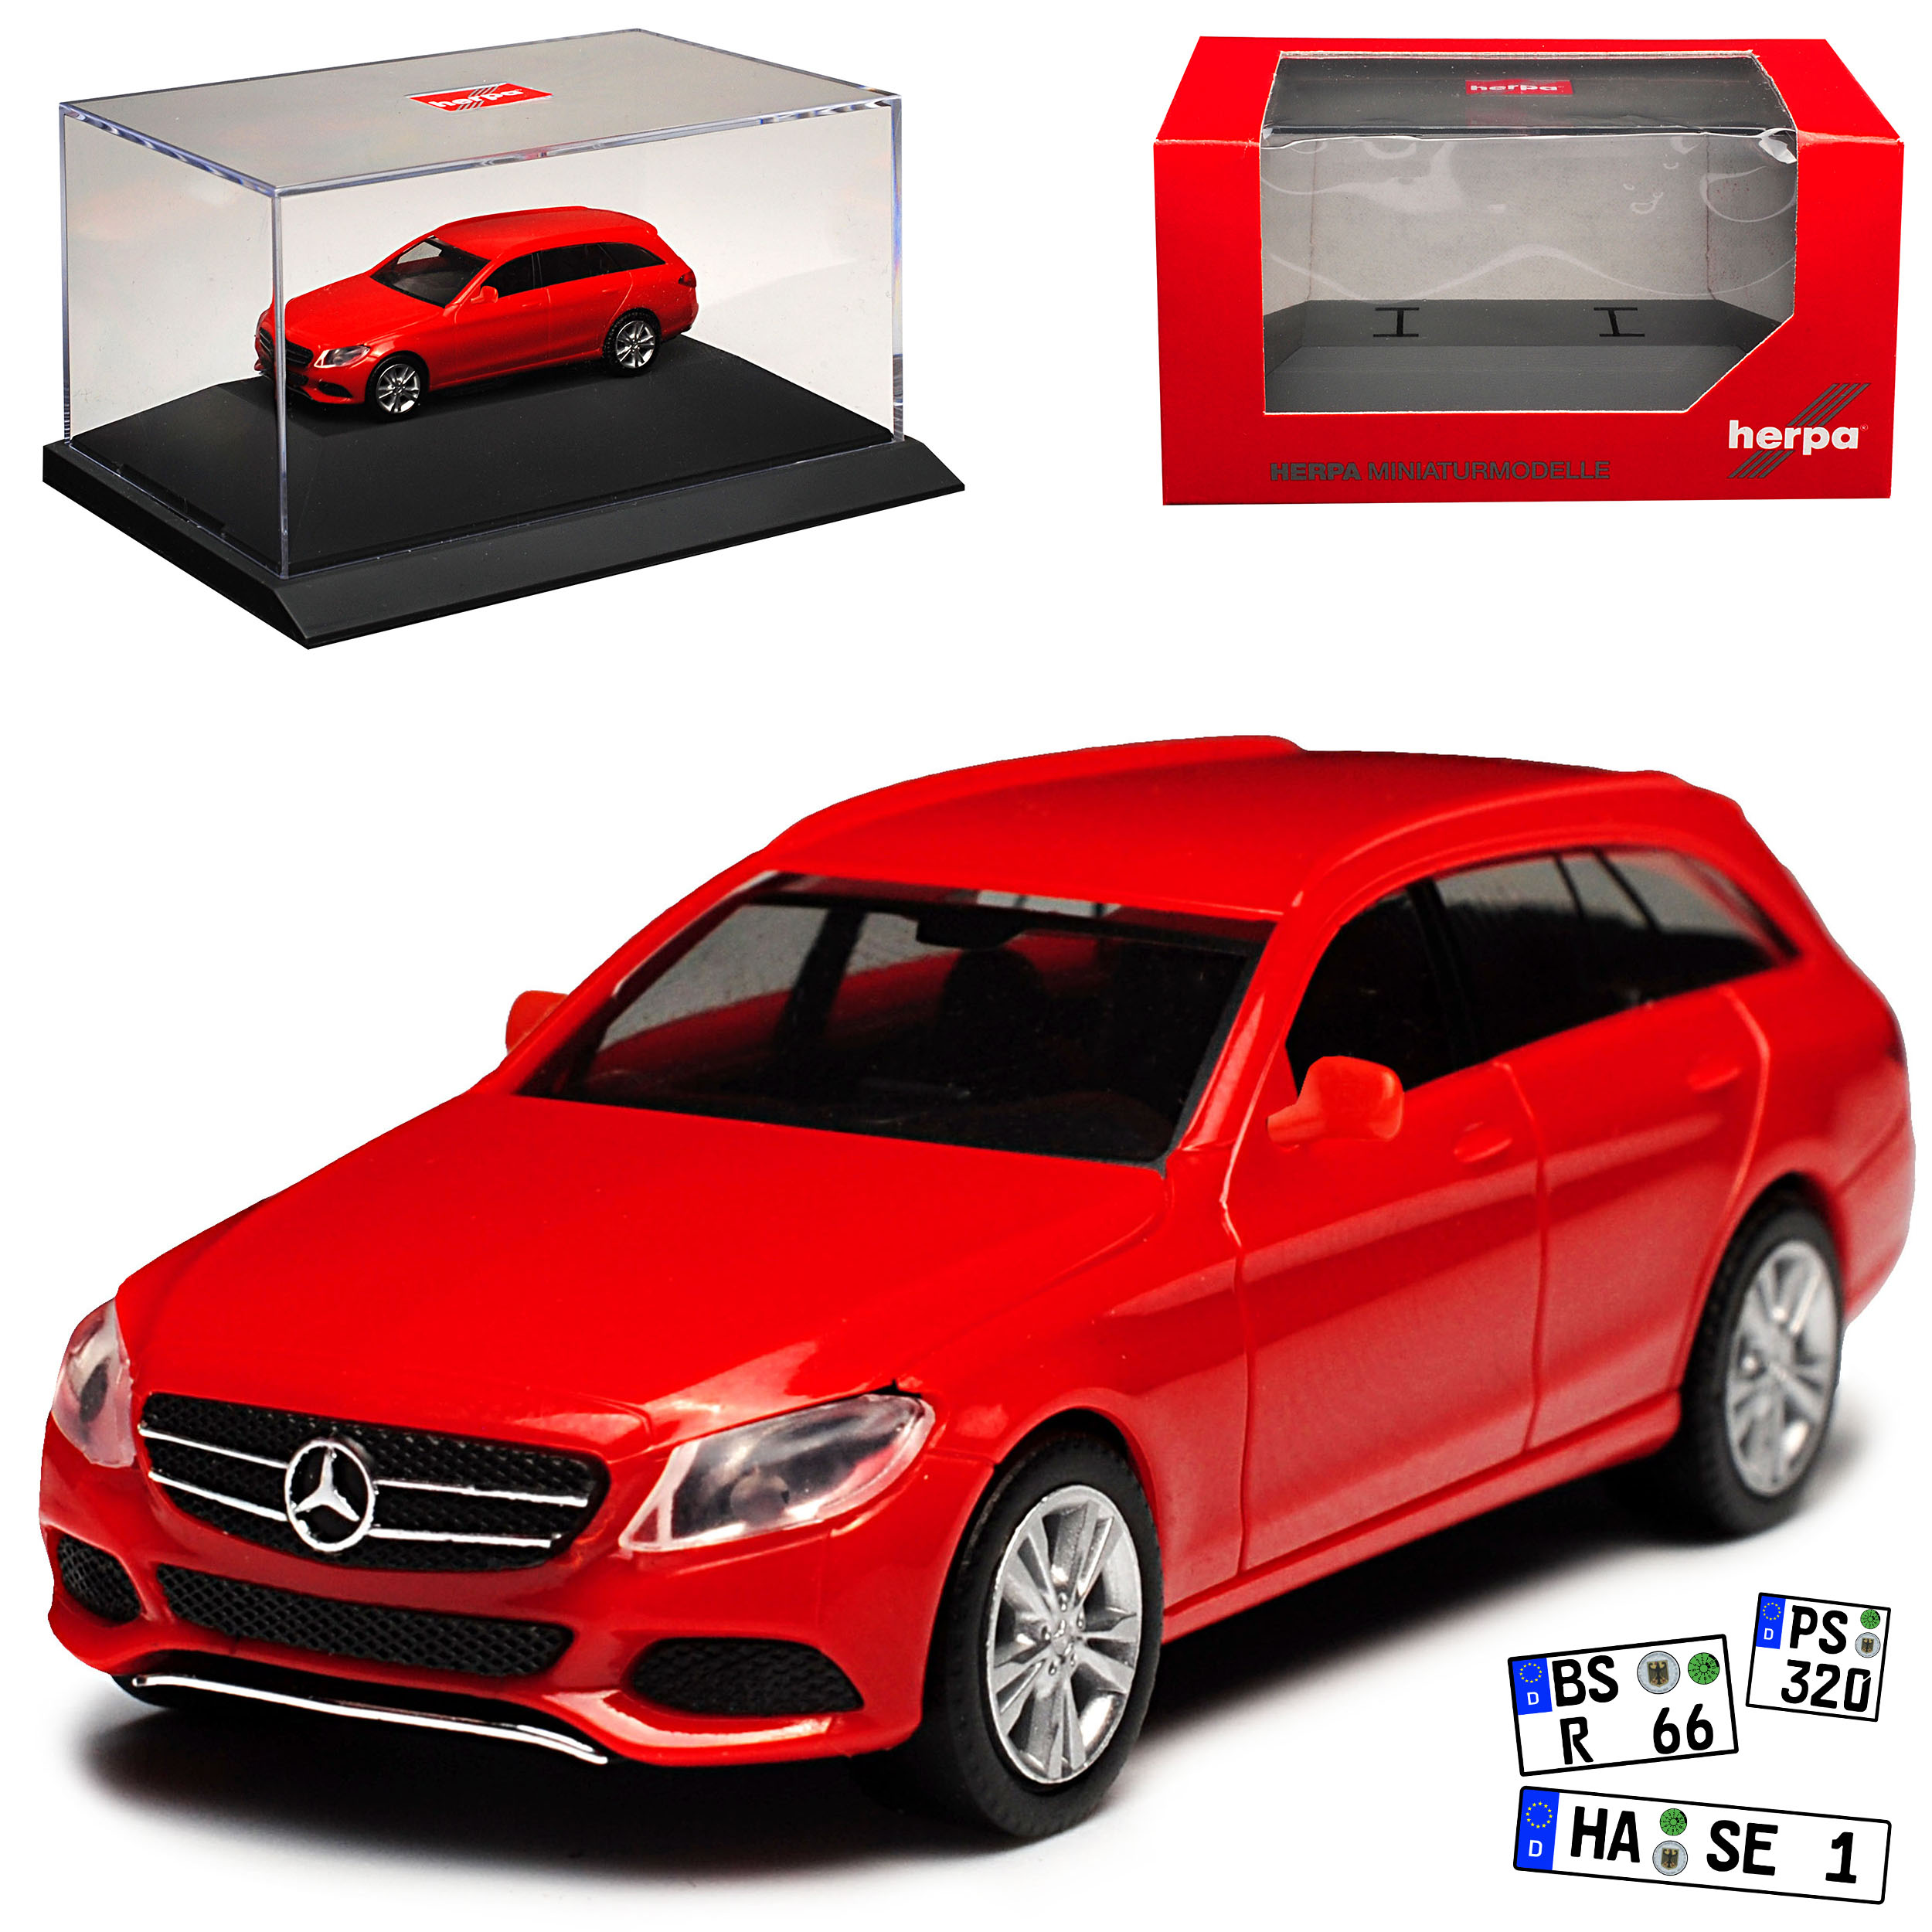 Mercedes-Benz-Classe-C-Modele-T-W205-Break-Rouge-Ab-2014-Kit-Kit-avec-Socle